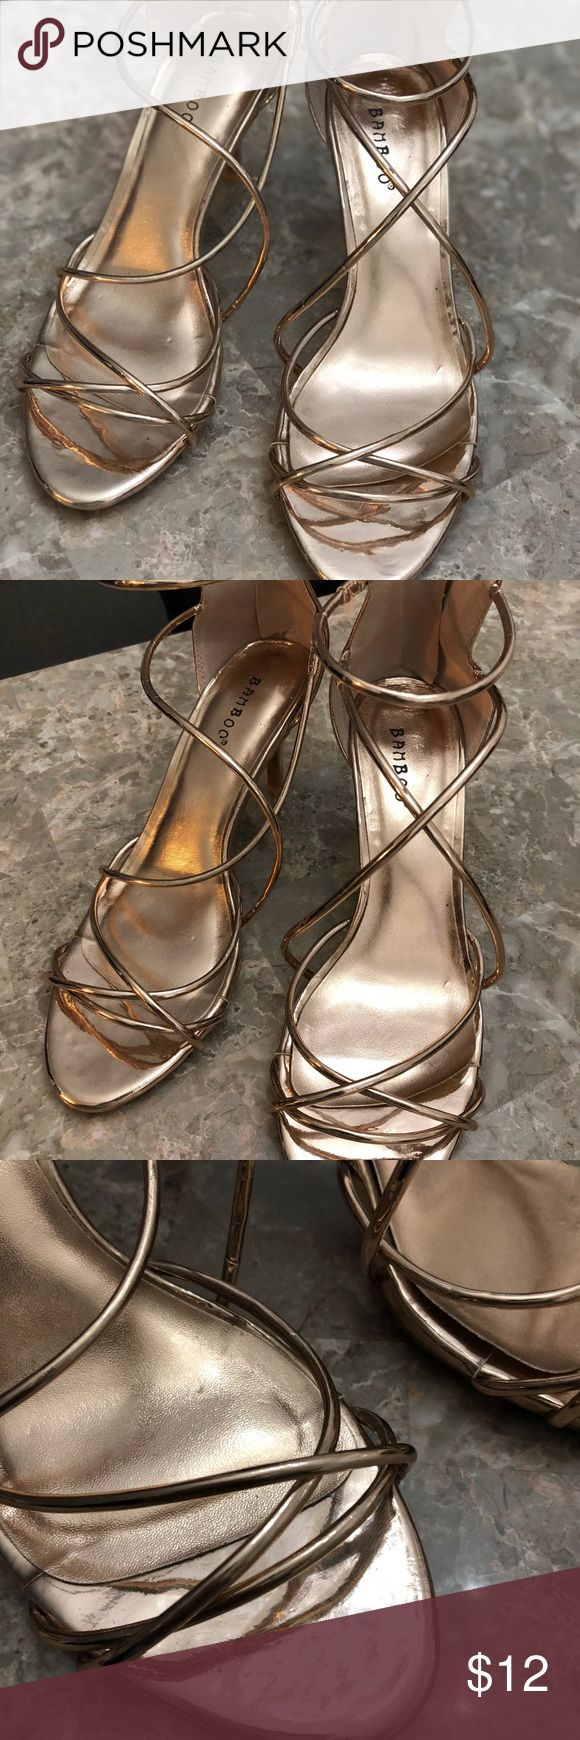 Rose gold heels 3 inch heels, rose gold copper look, can be uncomfortable if you're feet are extremely wide Shoes Heels